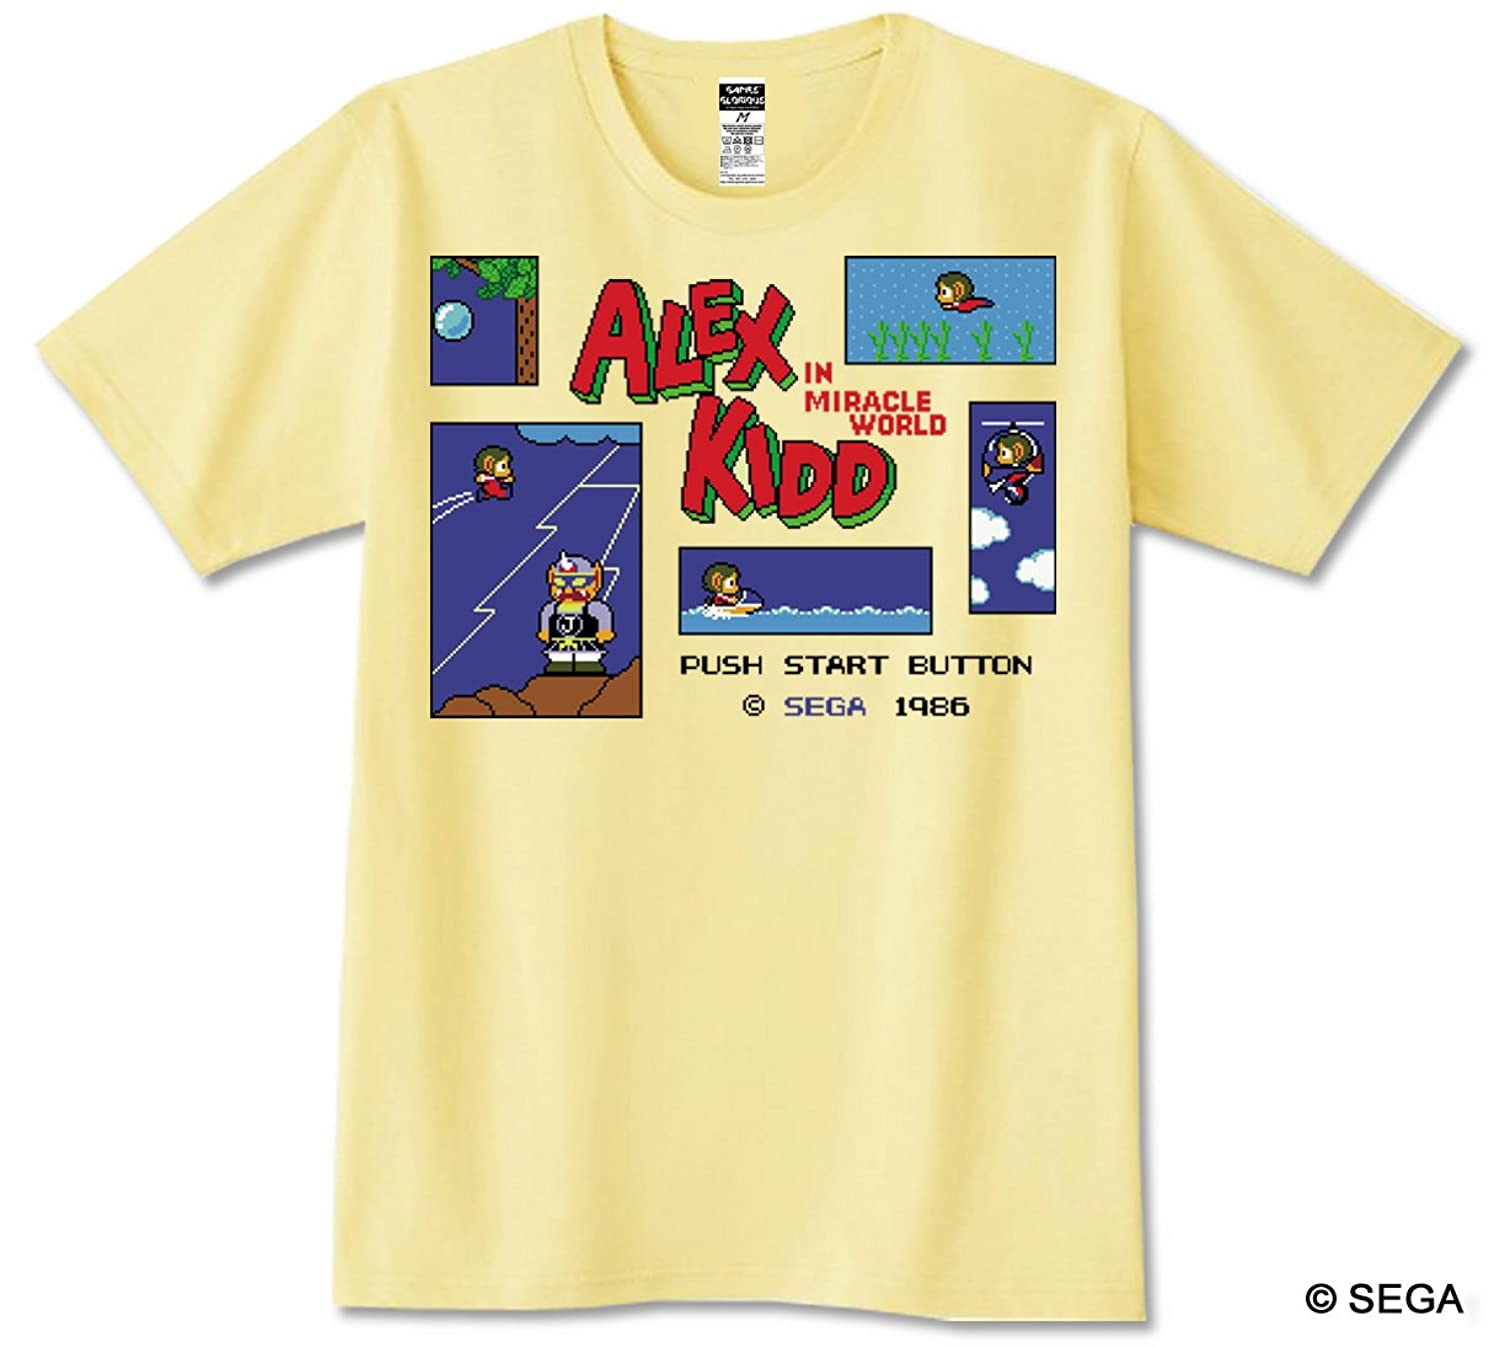 ALEX KIDD in Miracle World Tシャツ (L)